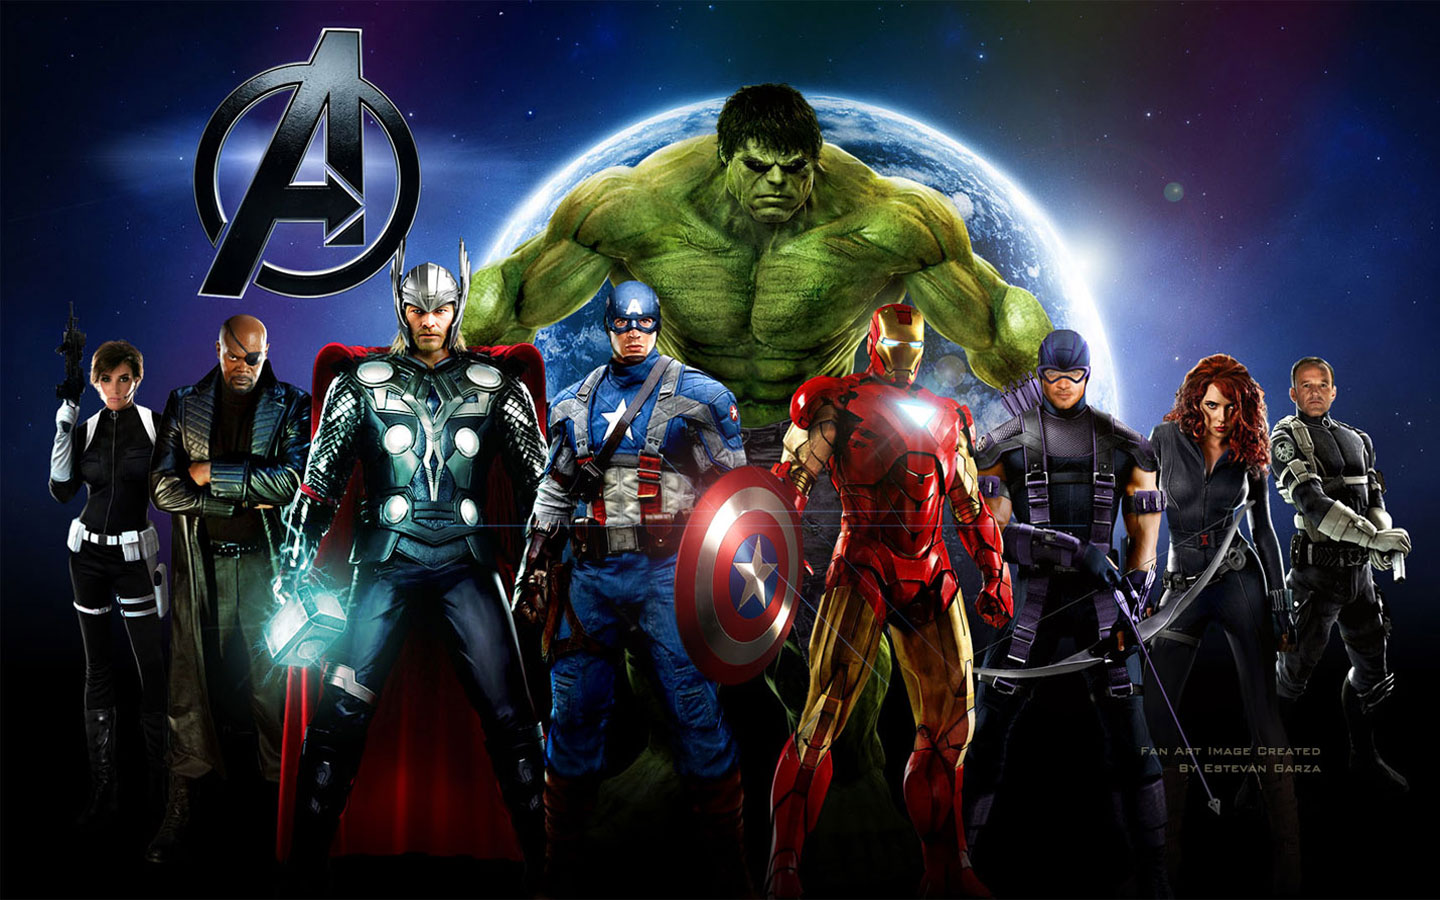 http://3.bp.blogspot.com/-4XxMpSda3Zk/T668vrdunTI/AAAAAAAABc4/jS6faKvuAWM/s1600/The-Avengers-Movie-Widescreen-Wallpaper.jpg